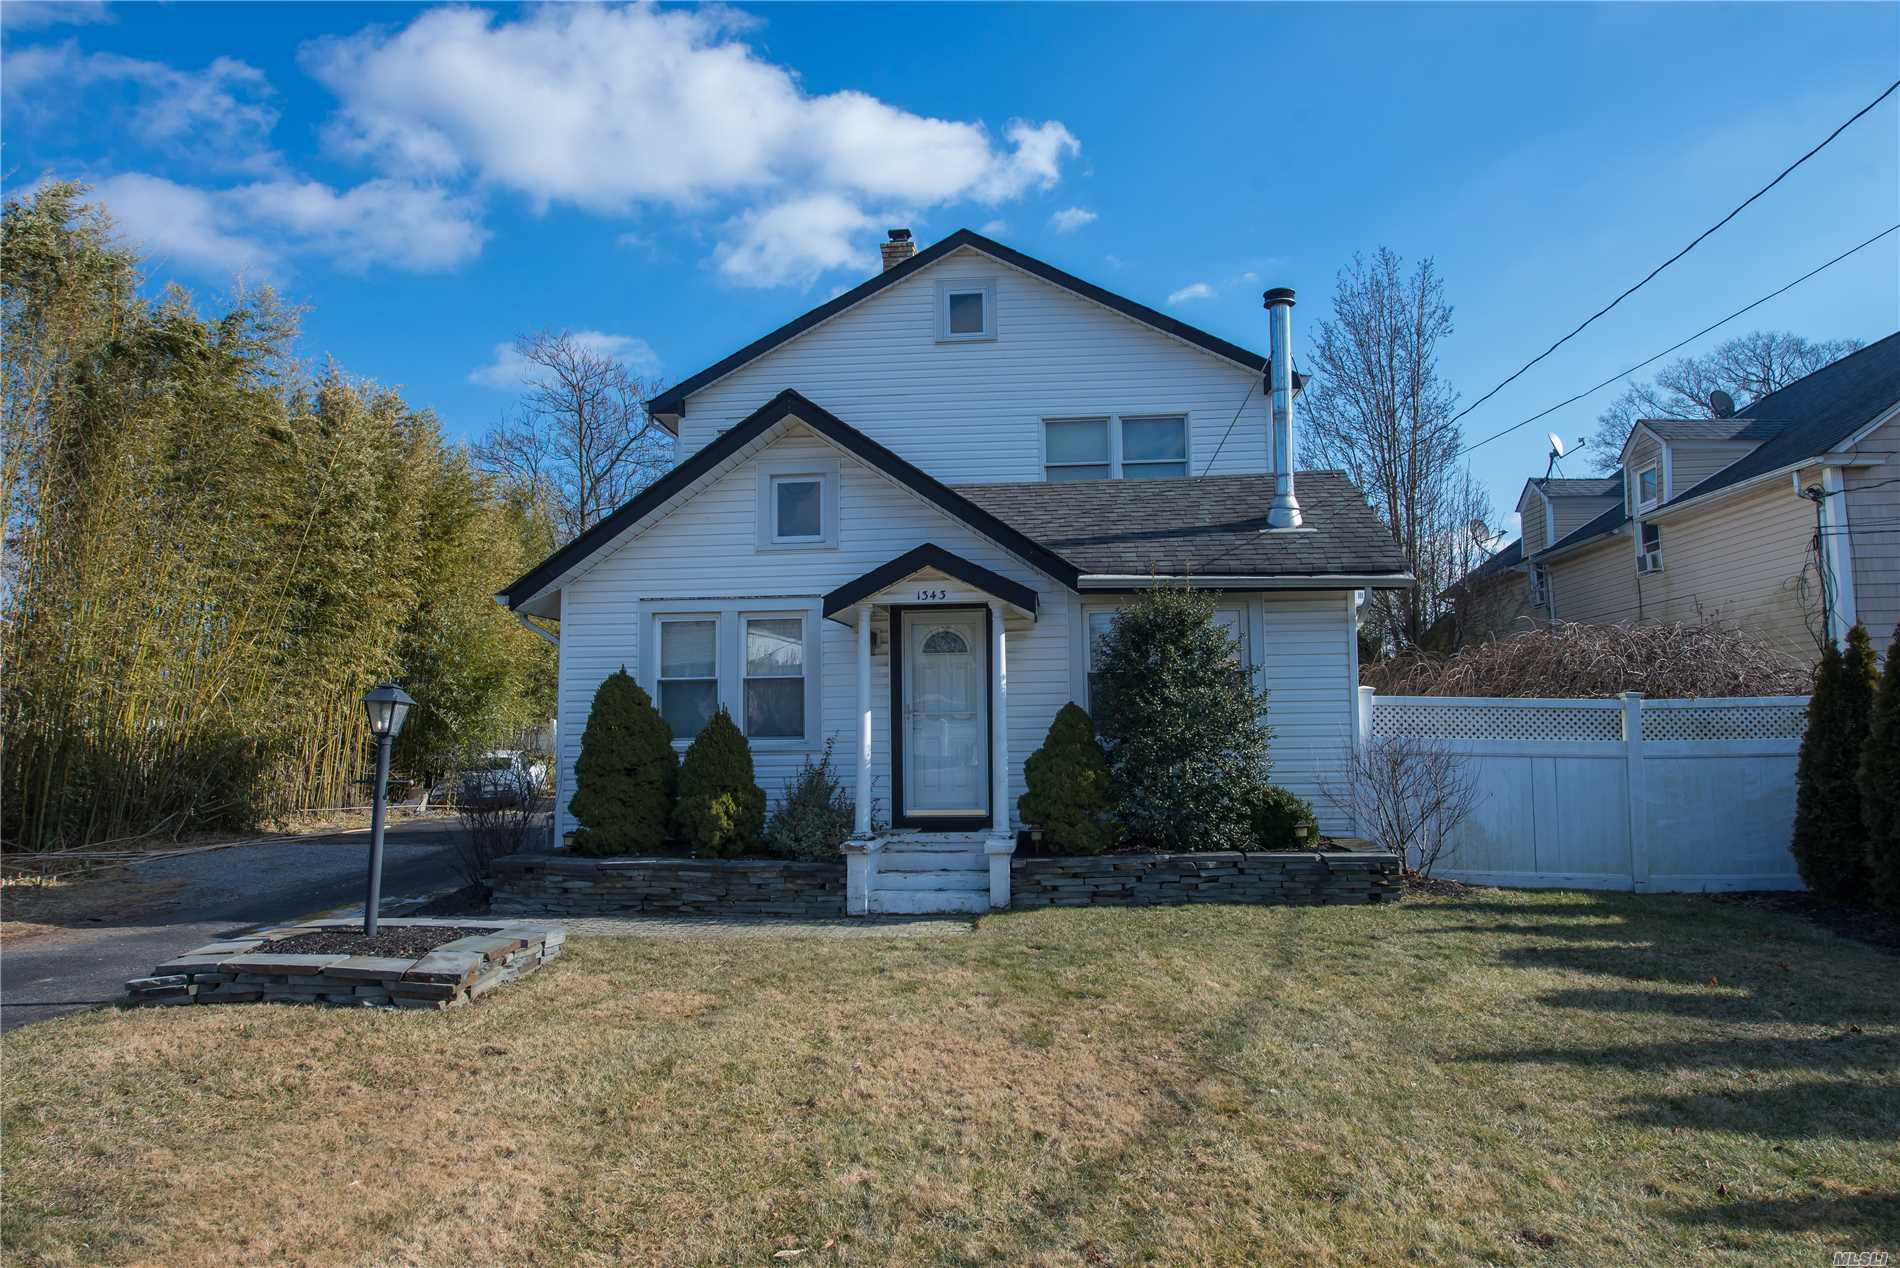 This Charming Colonial Offers Open Living Space, Large Living Room With Vaulted Ceilings, Updated Kitchen With Granite Counter Tops & Stainless Steel Appliances, Formal Dining Room, 2 Bedrooms And 2 Full Baths. Plenty Of Room For Mom. Park Like Property. Connetquot Schools